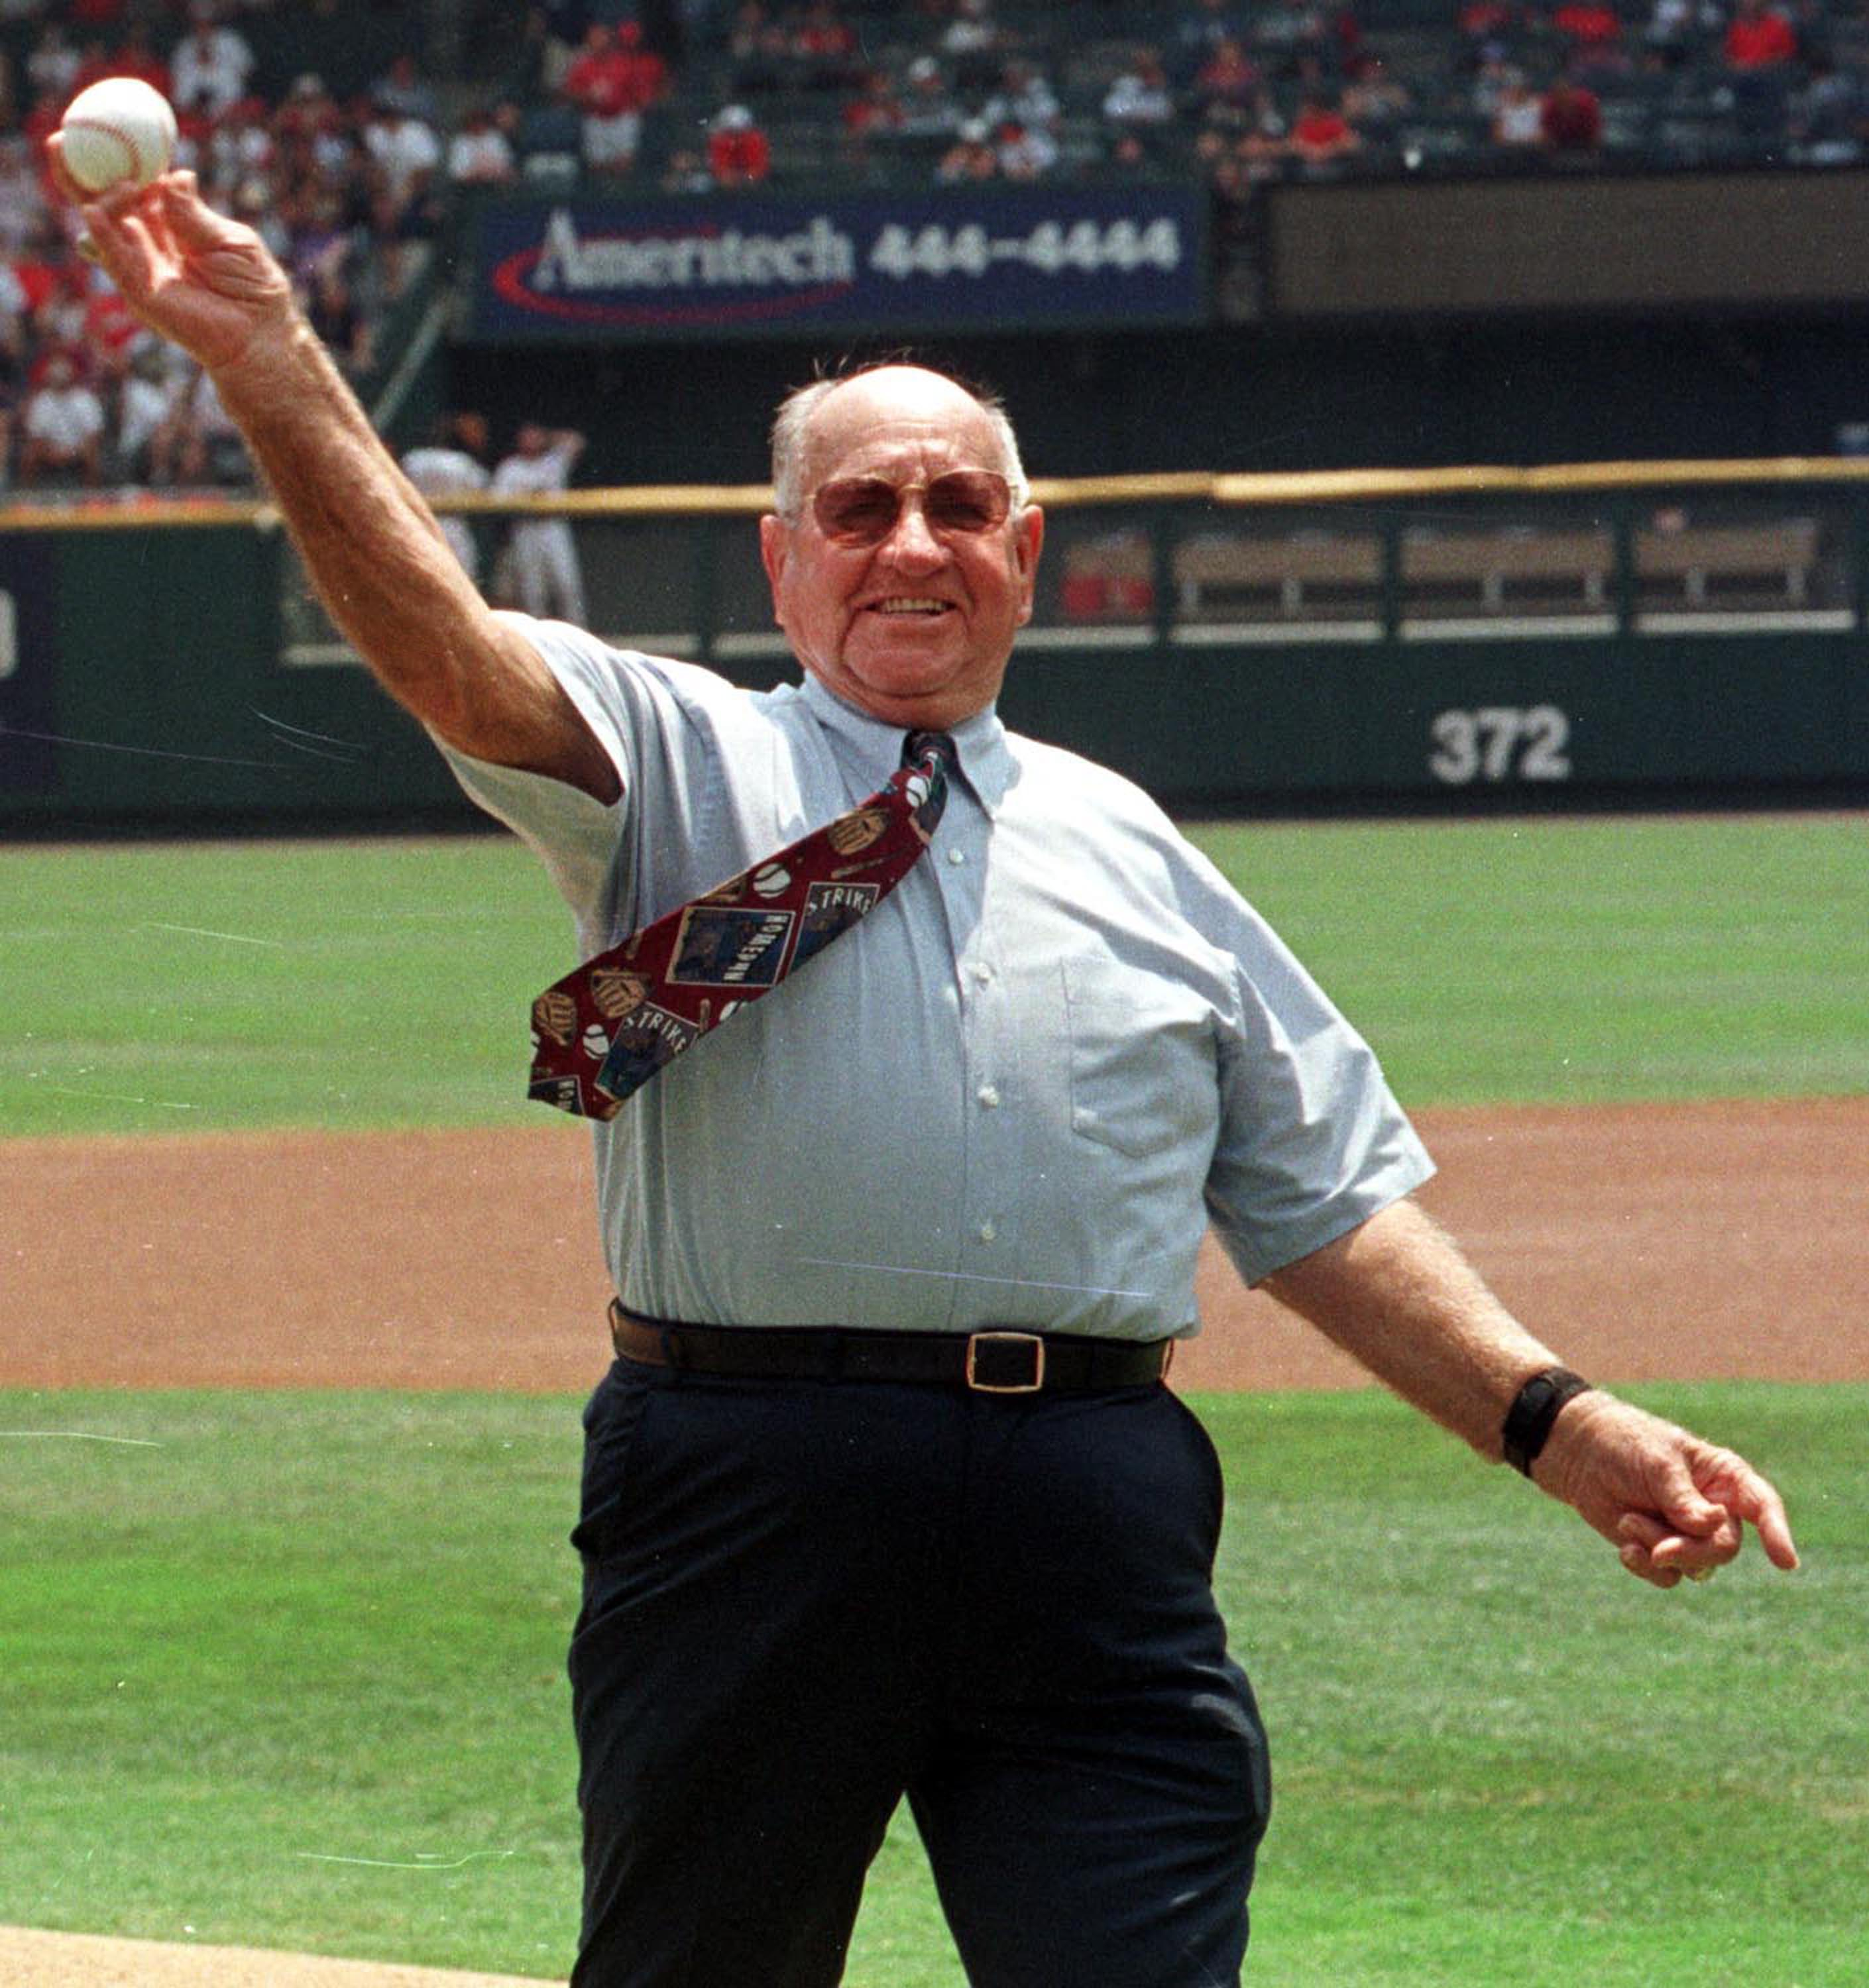 ST. LOUIS- JULY 18, 1999:  Former St. Louis Cardinals' baseball great and Hall of Famer Enos Slaughter, pictured in this July 18, 1999 file photo, died at Duke University Medical Center August 12, 2002 in Durham, North Carolina.  He was 86.  Slaughter is